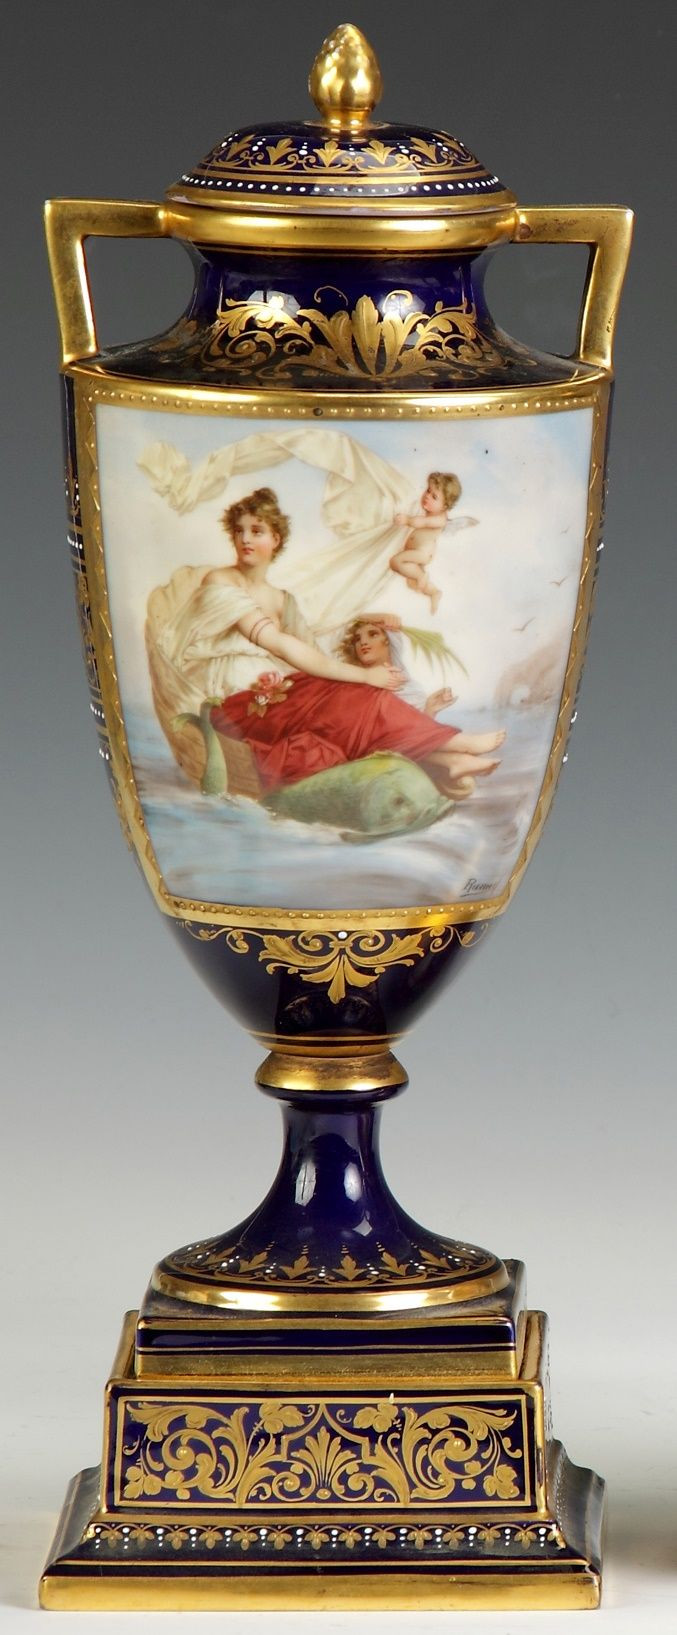 royal vienna vase of 1404 best antique vintage treaures images on pinterest tea time inside royal vienna porcelain covered urn hand painted decoration depicting classical figures circa 1850 1900